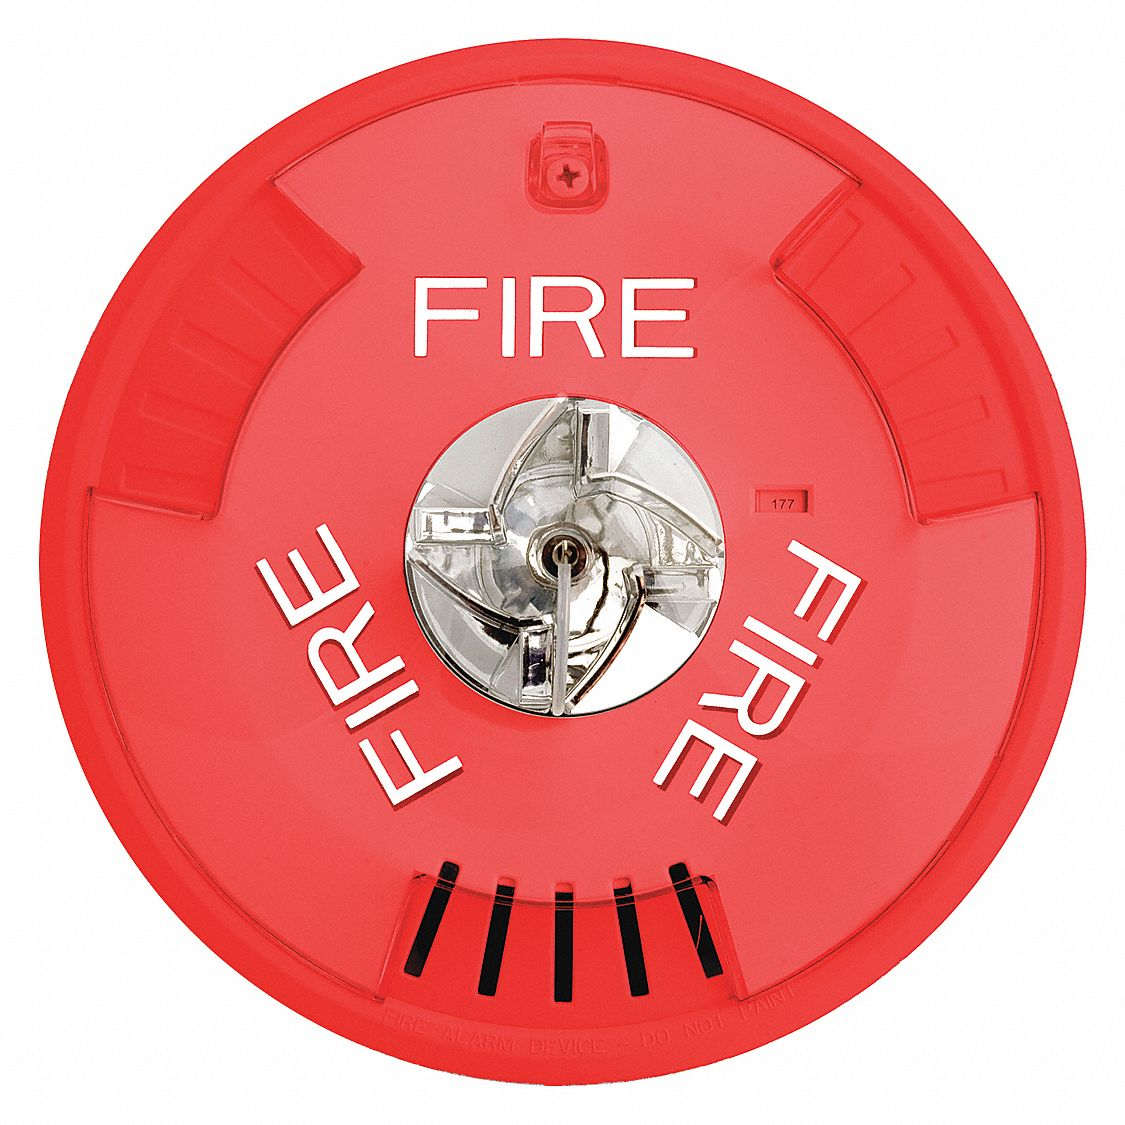 Horn Strobe, Continuous/Pulse Sound Pattern, 12 to 24V DC Voltage, Decibels: 99 dB, Color: Red